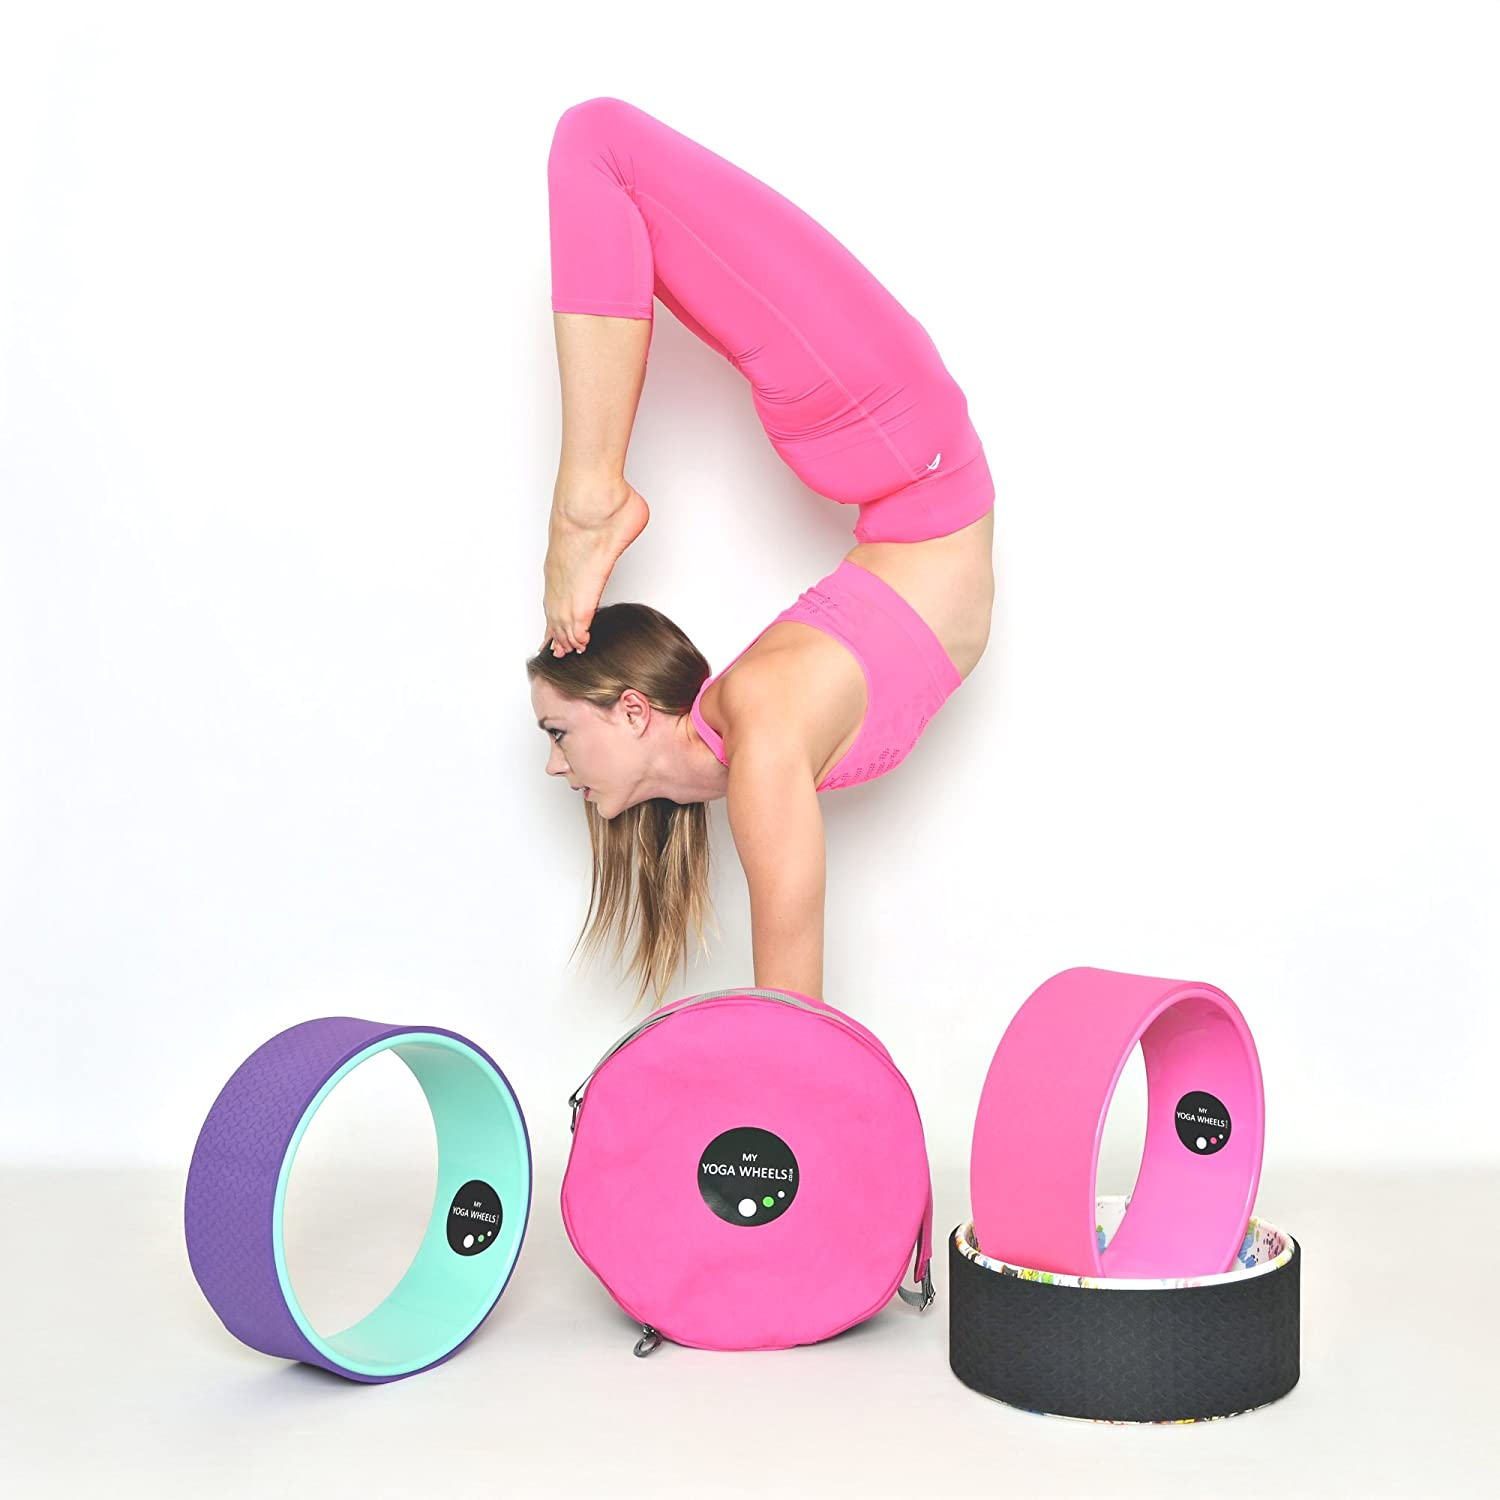 Amazon.com : MyYogaWheels Yoga Wheel for Stretching ...